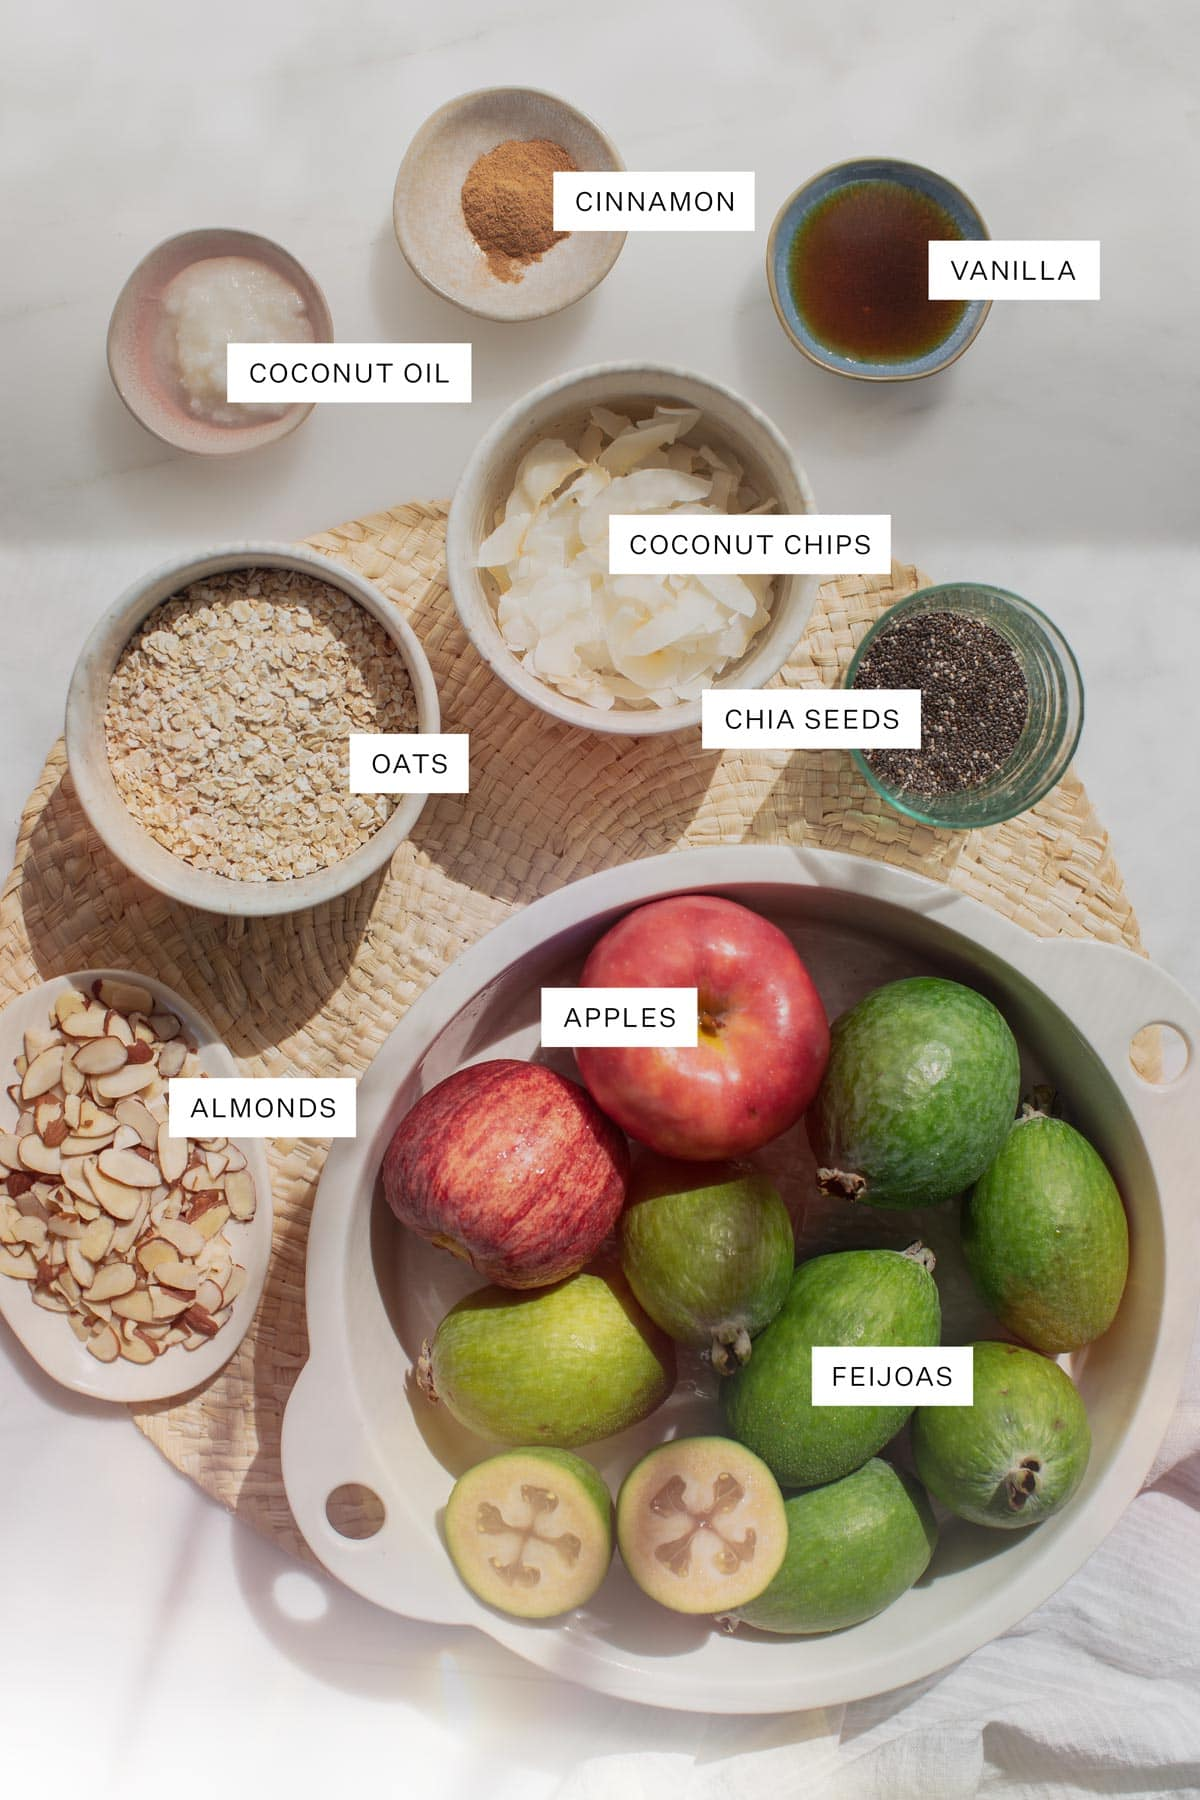 Flat lay of all the ingredients needed for this recipe - including feijoas, apples, oats, almonds, coconut flakes, cinnamon, chia, coconut oil, maple syrup